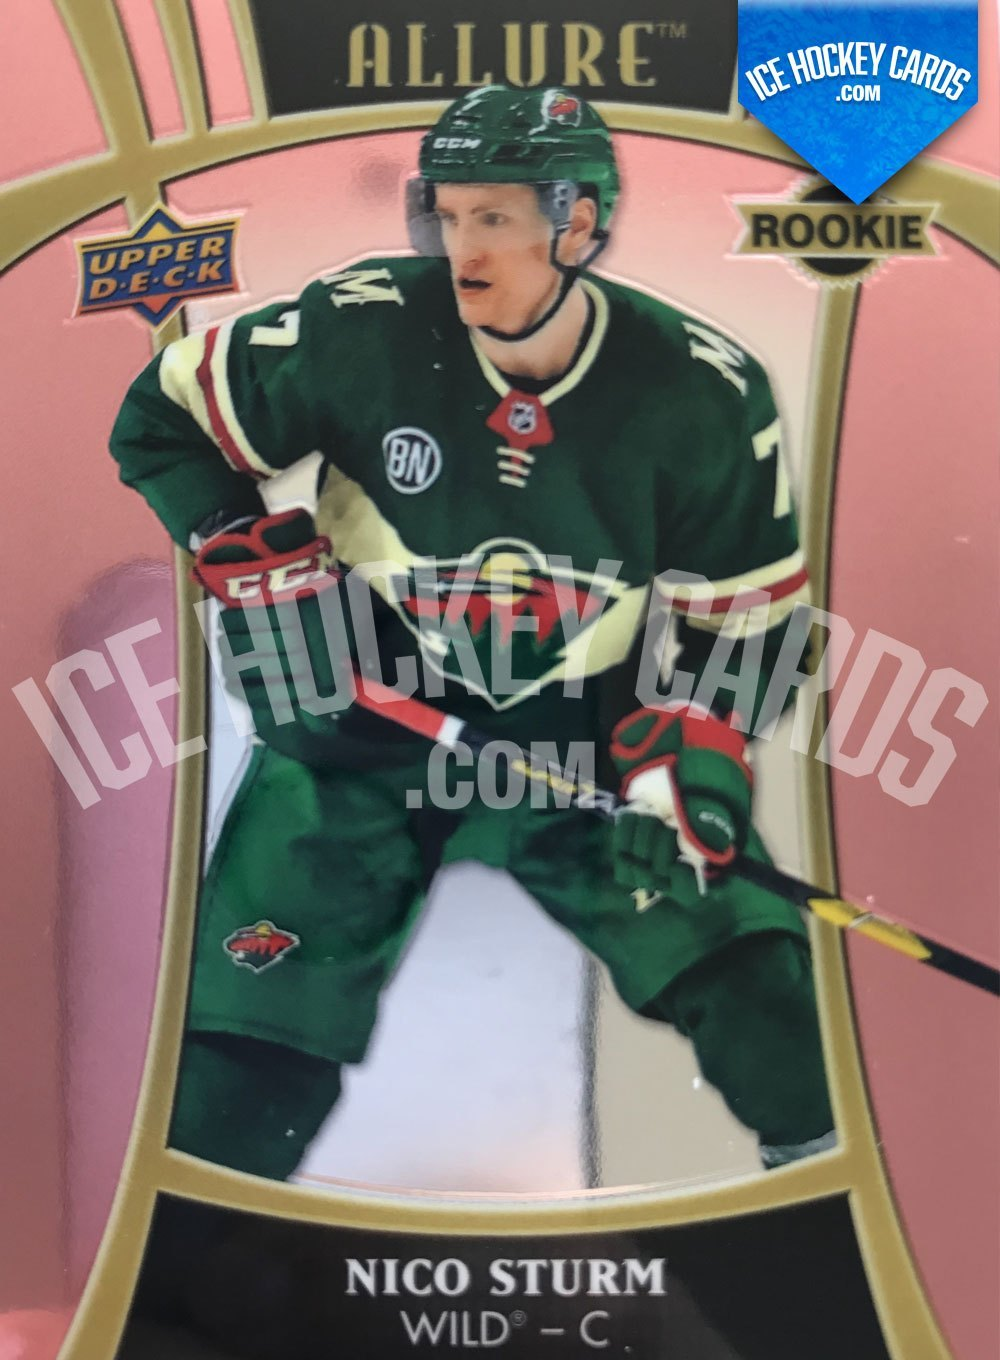 Upper Deck - Allure 19-20 - Nico Sturm Rookie Card